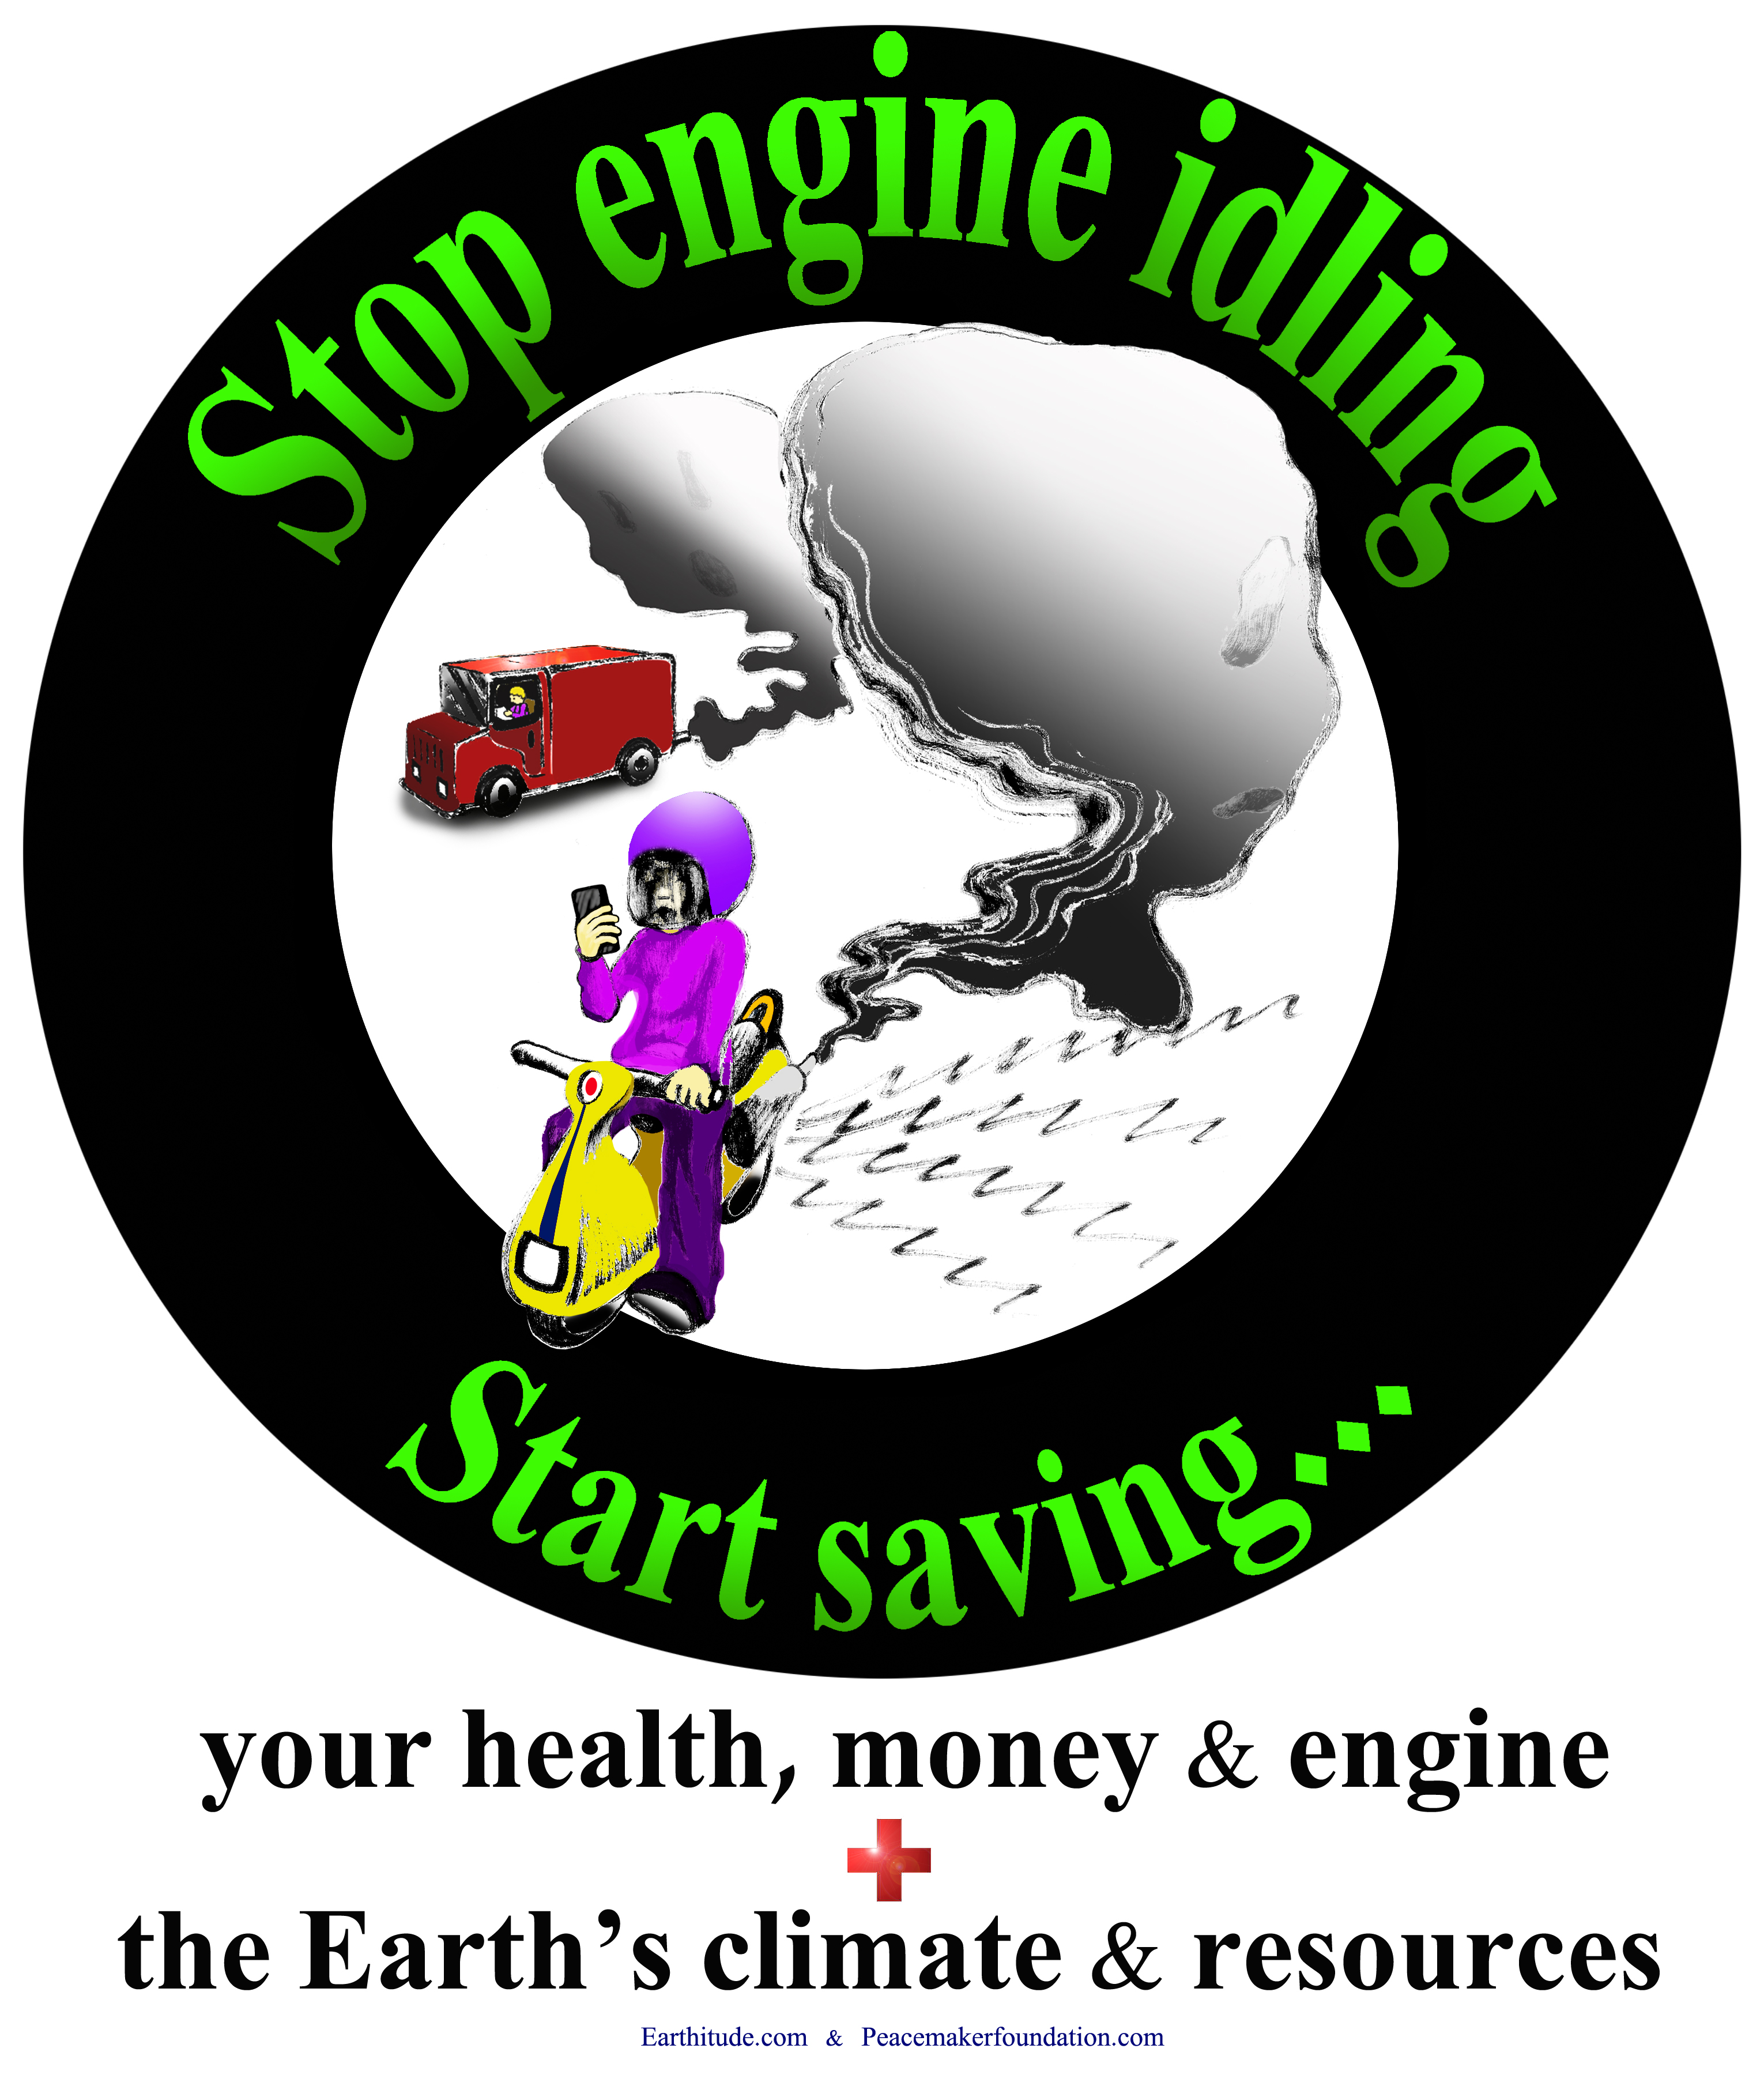 Engine Idling Posters